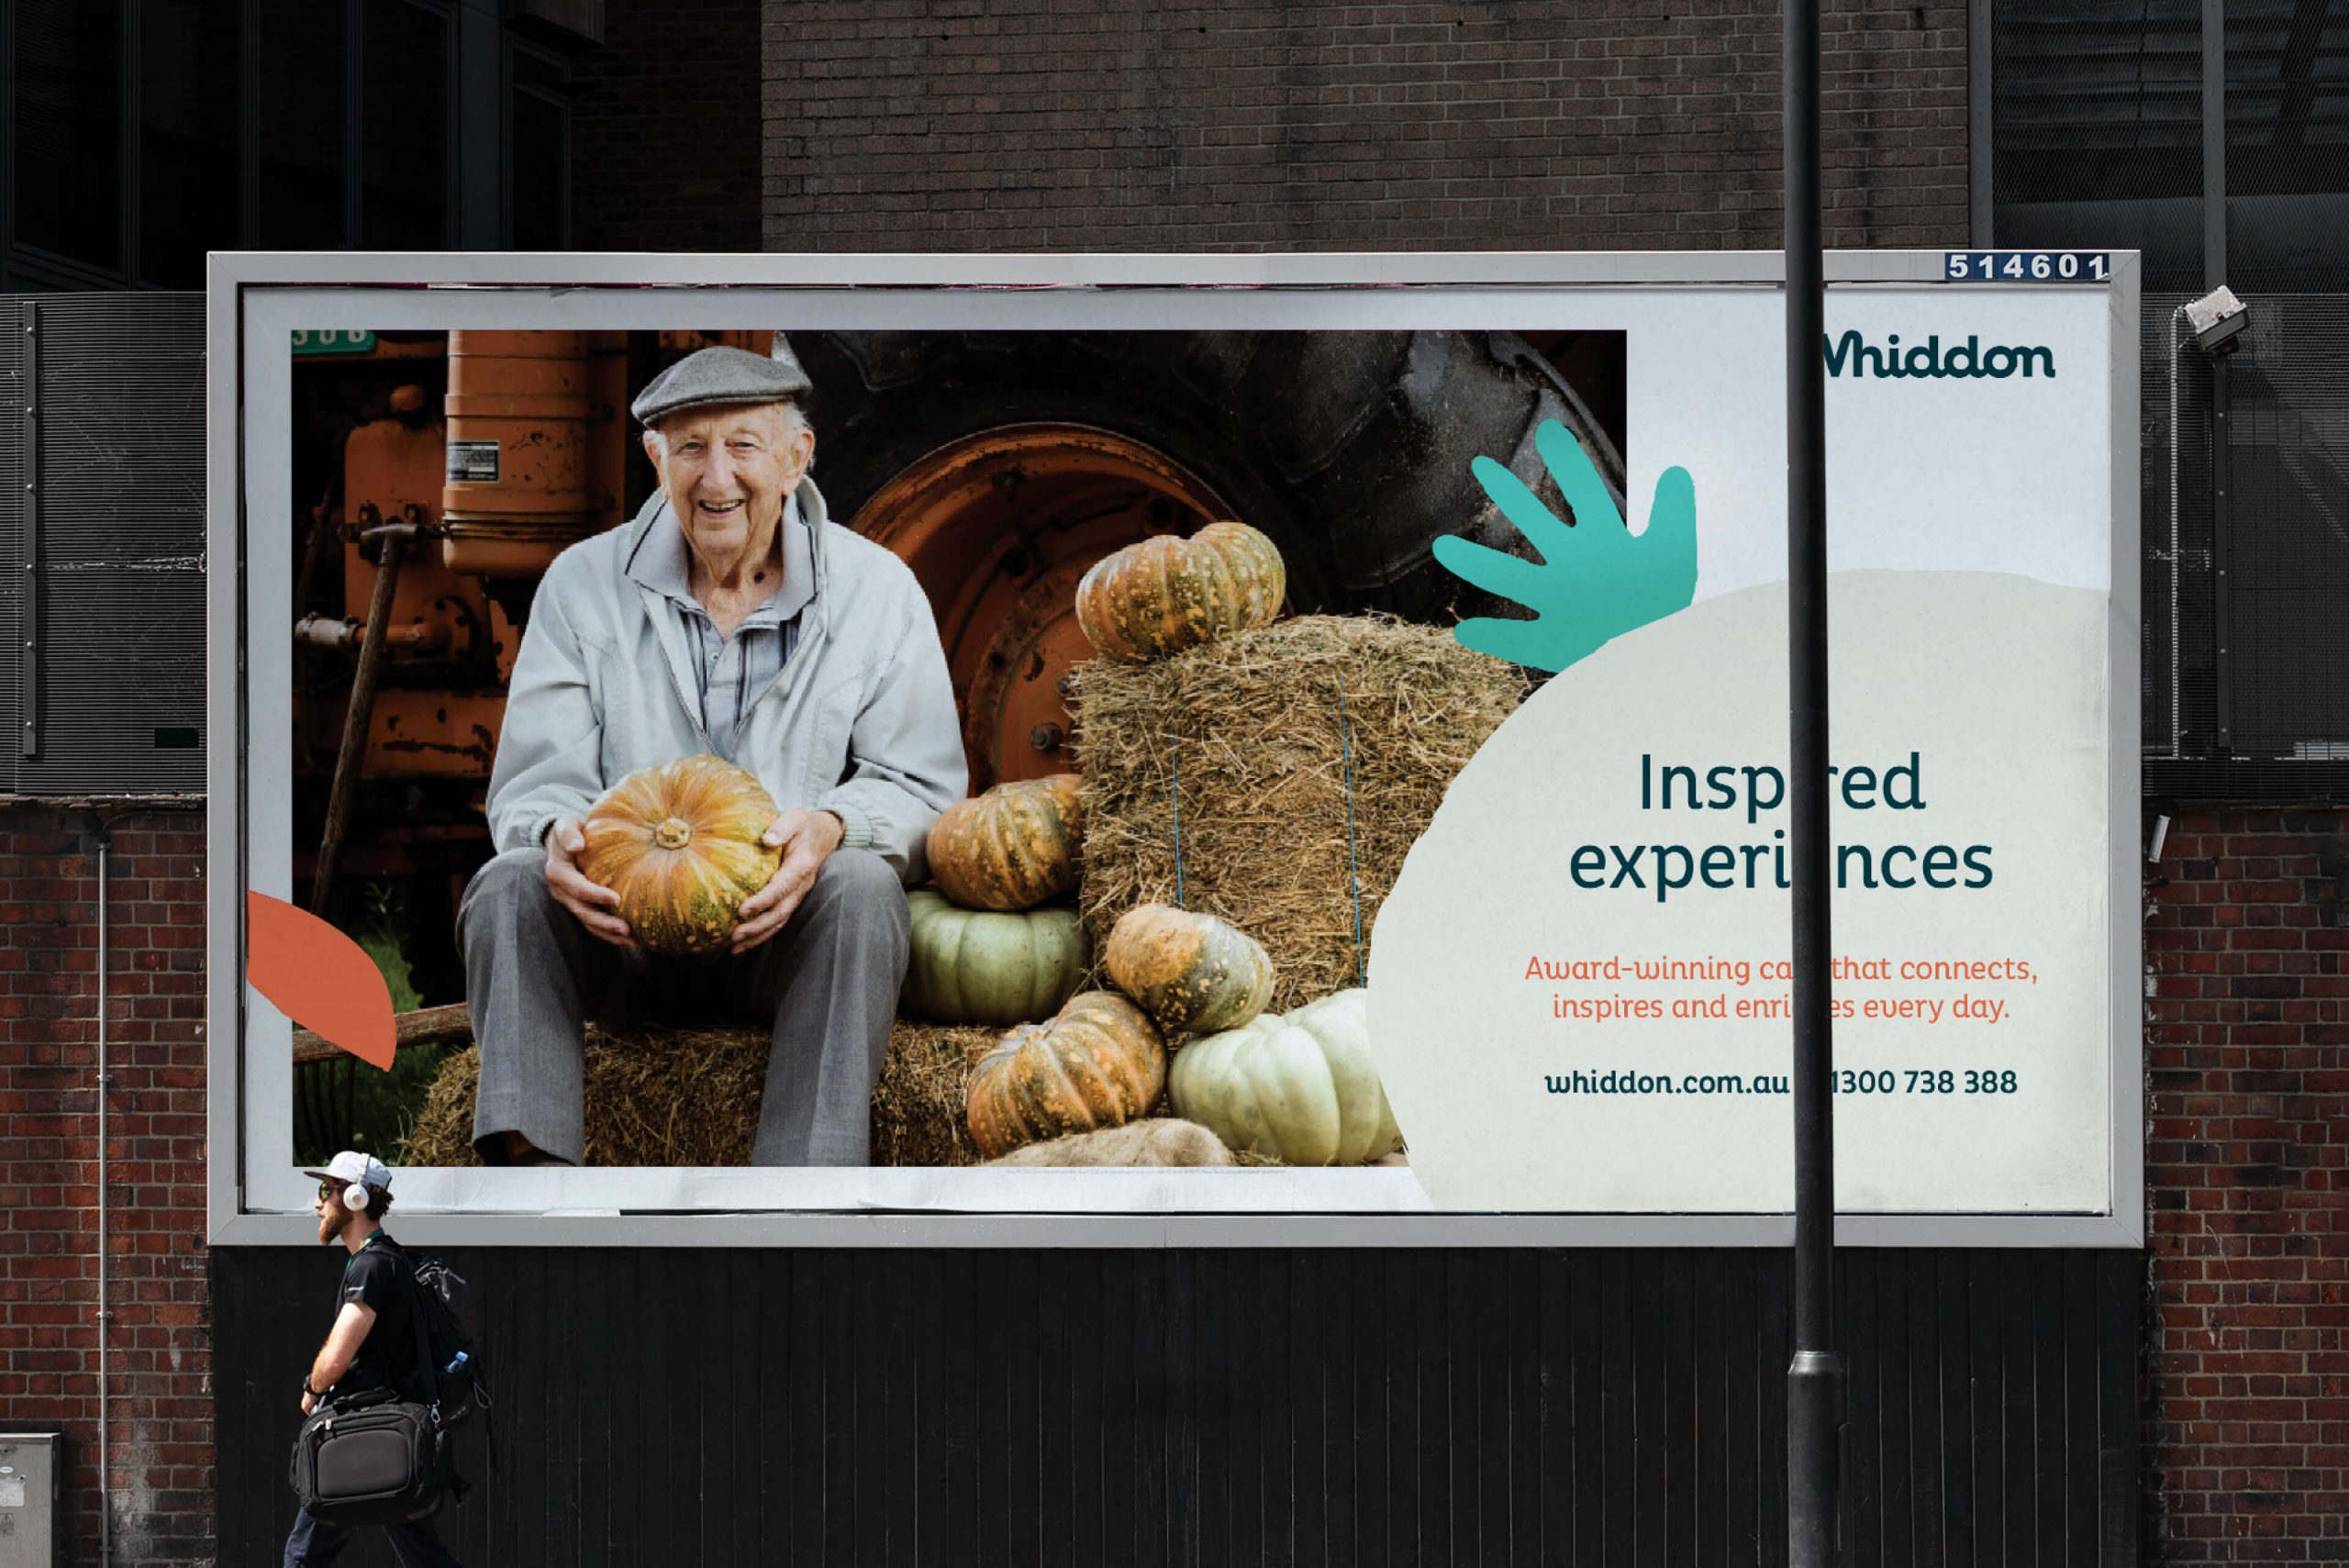 Whiddon Brand Refresh - Template for out-of-home billboard advertising